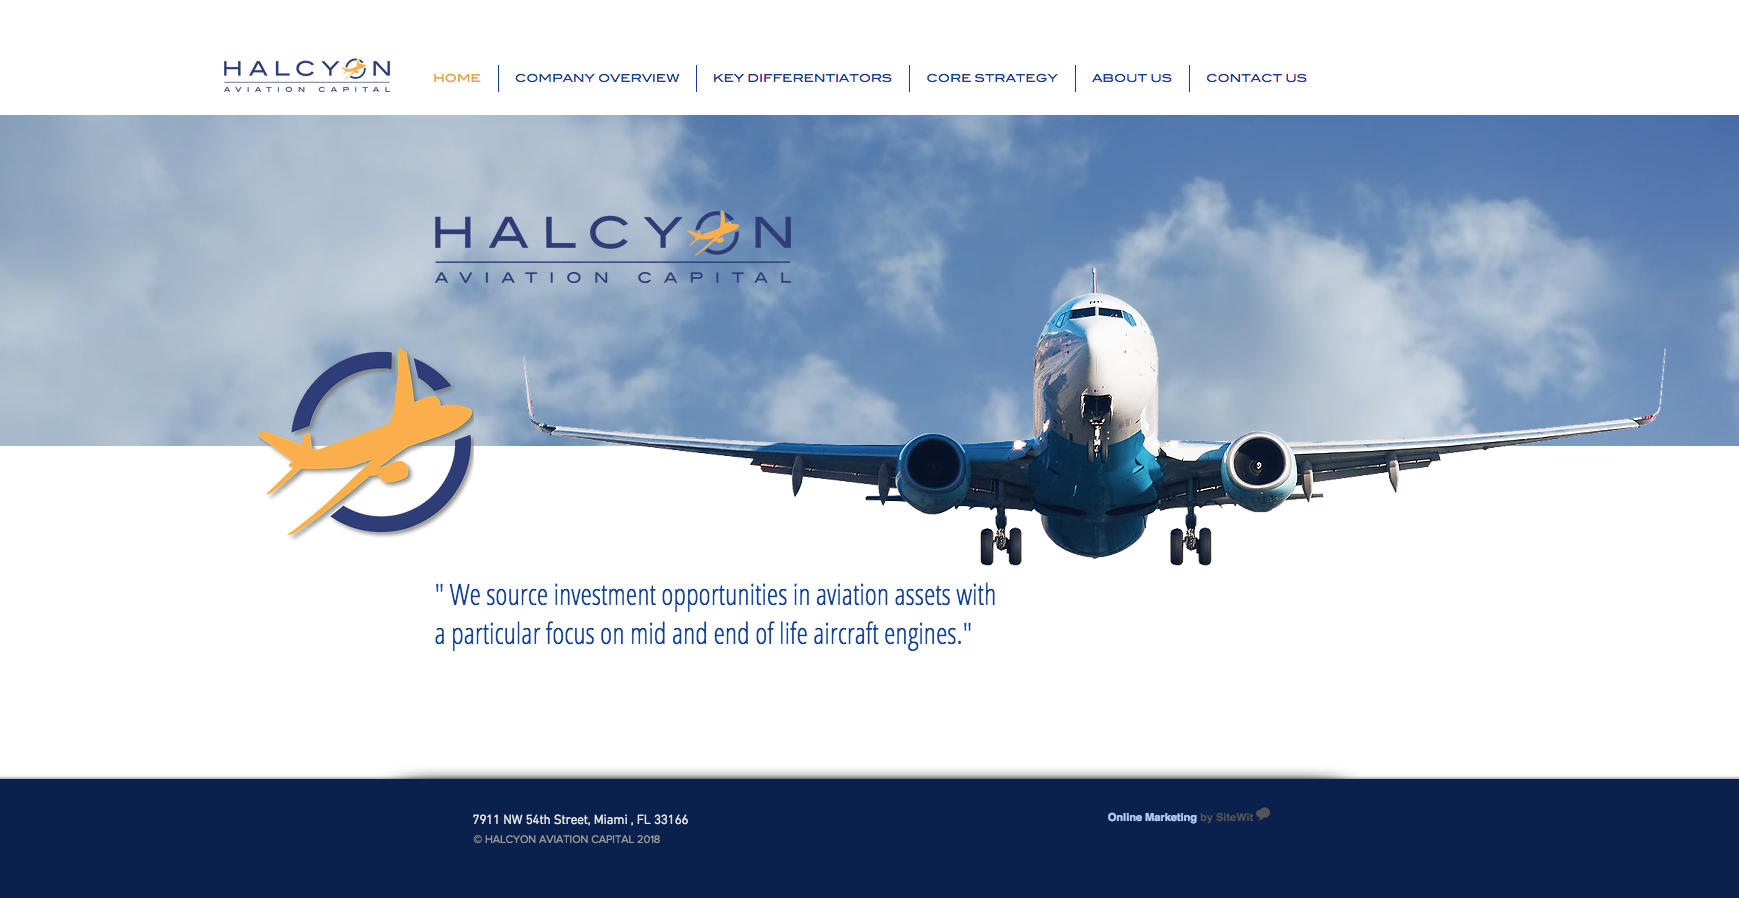 Halcyon Aviation Capital